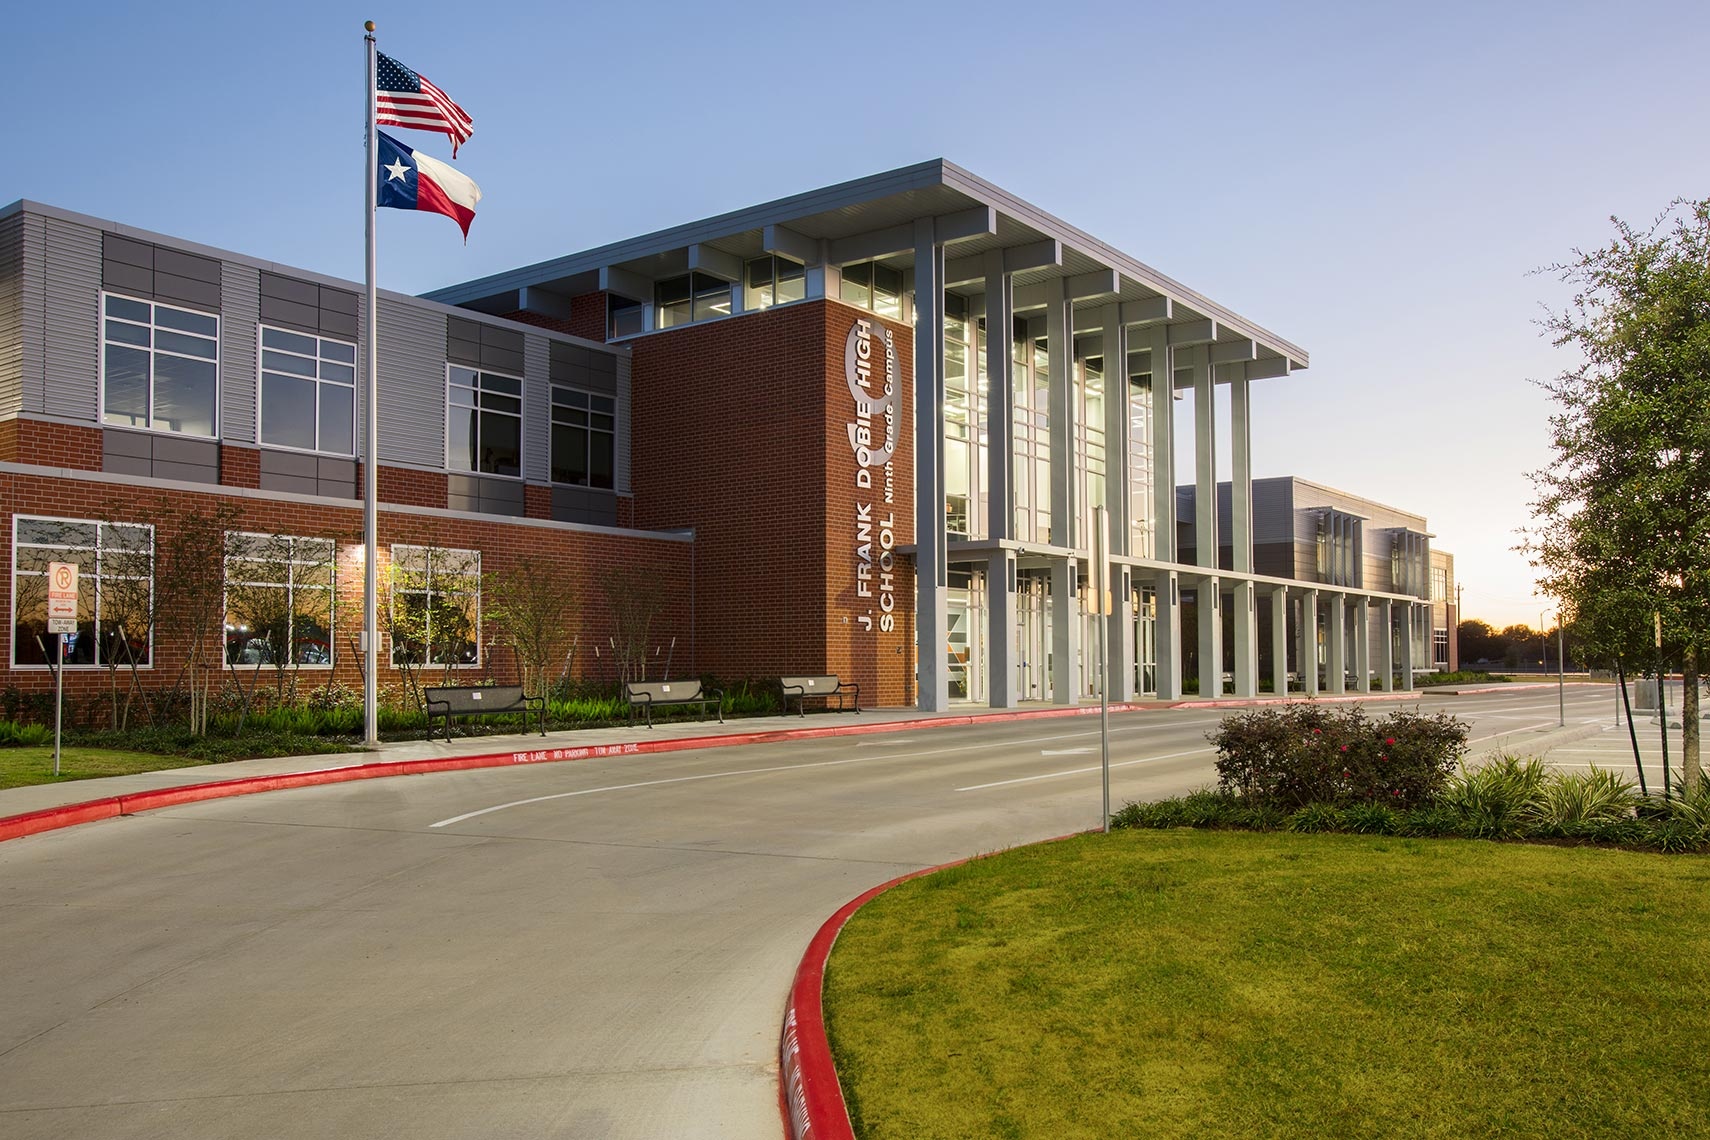 a newly constructed Texas school with American and Texas flags by the best education architecture firm photographer